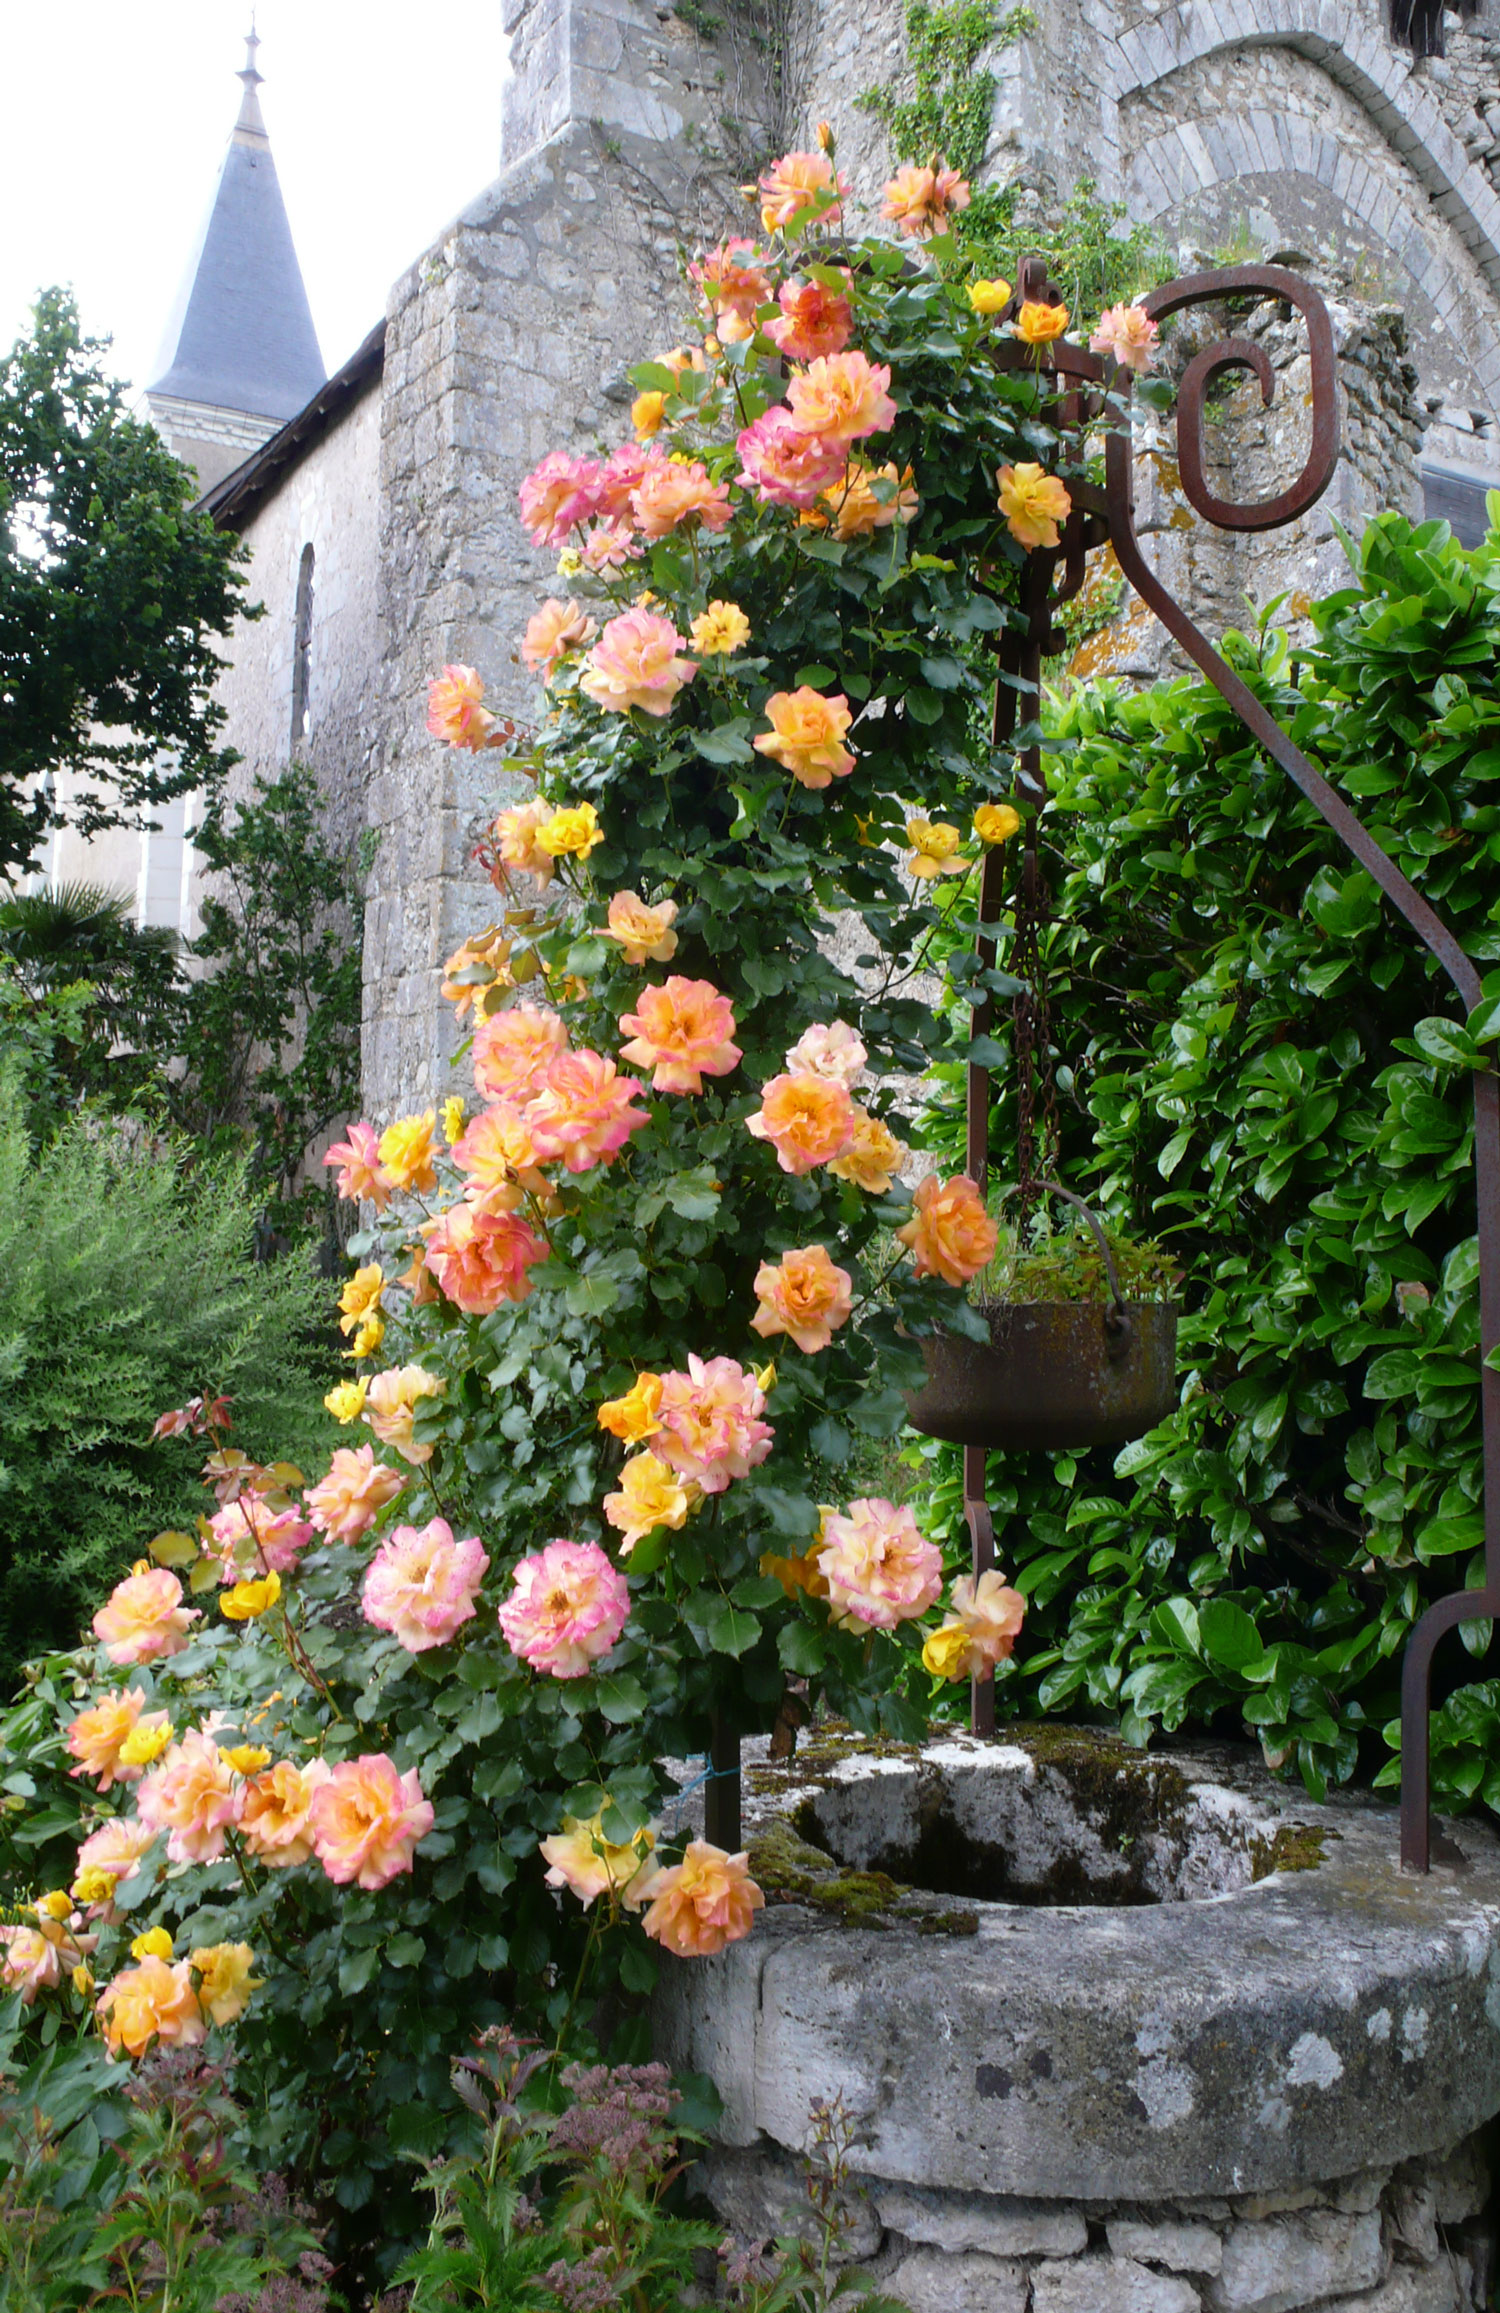 A rose garden in a priory aussie in france for Art and decoration france